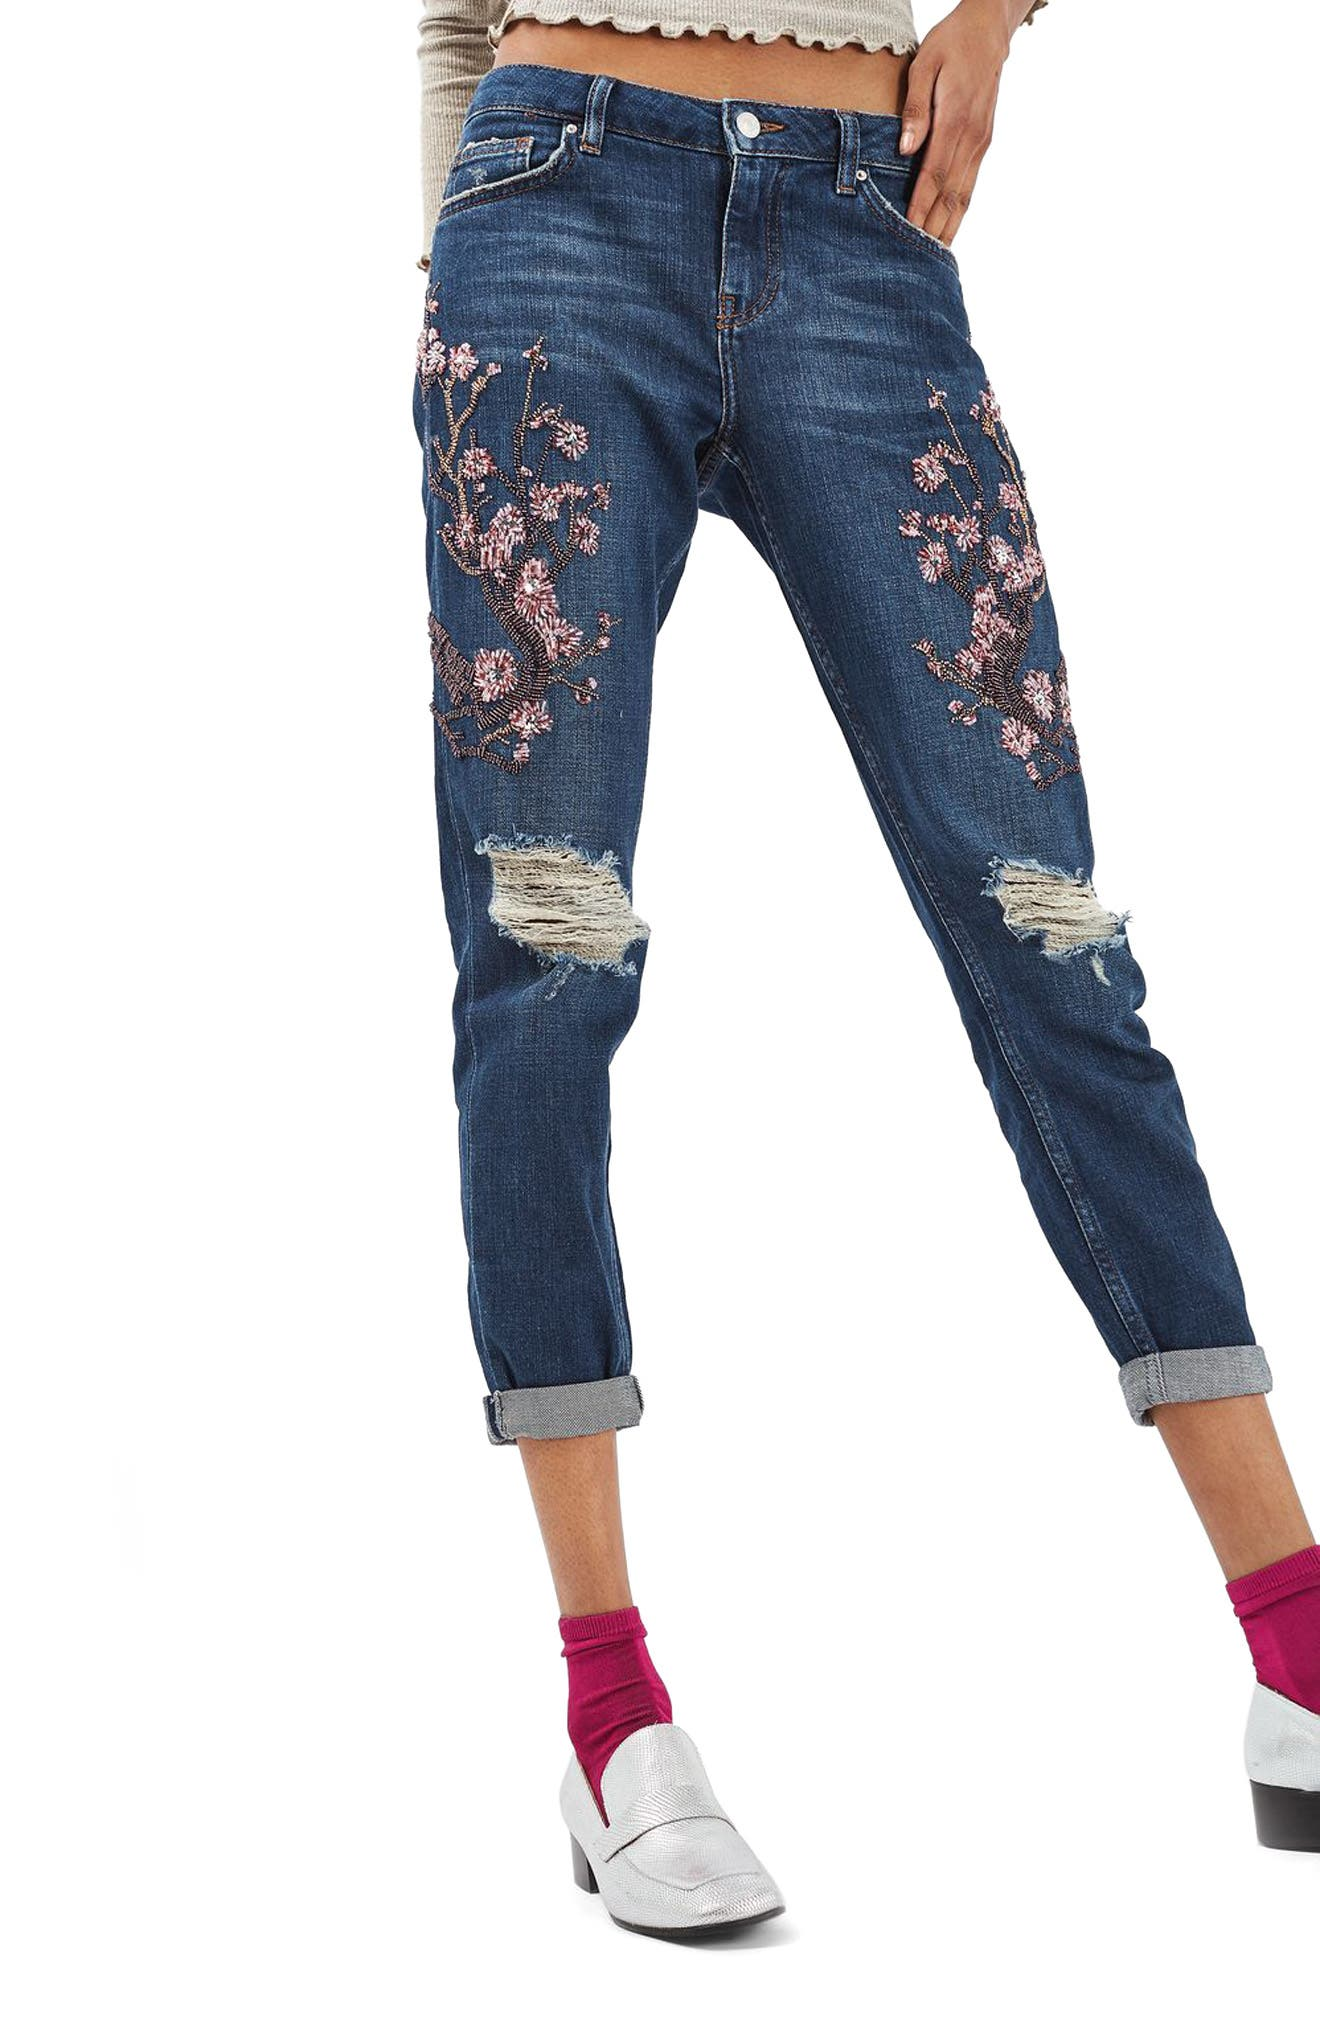 Alternate Image 1 Selected - Topshop Lucas Beaded Boyfriend Jeans (Limited Edition)